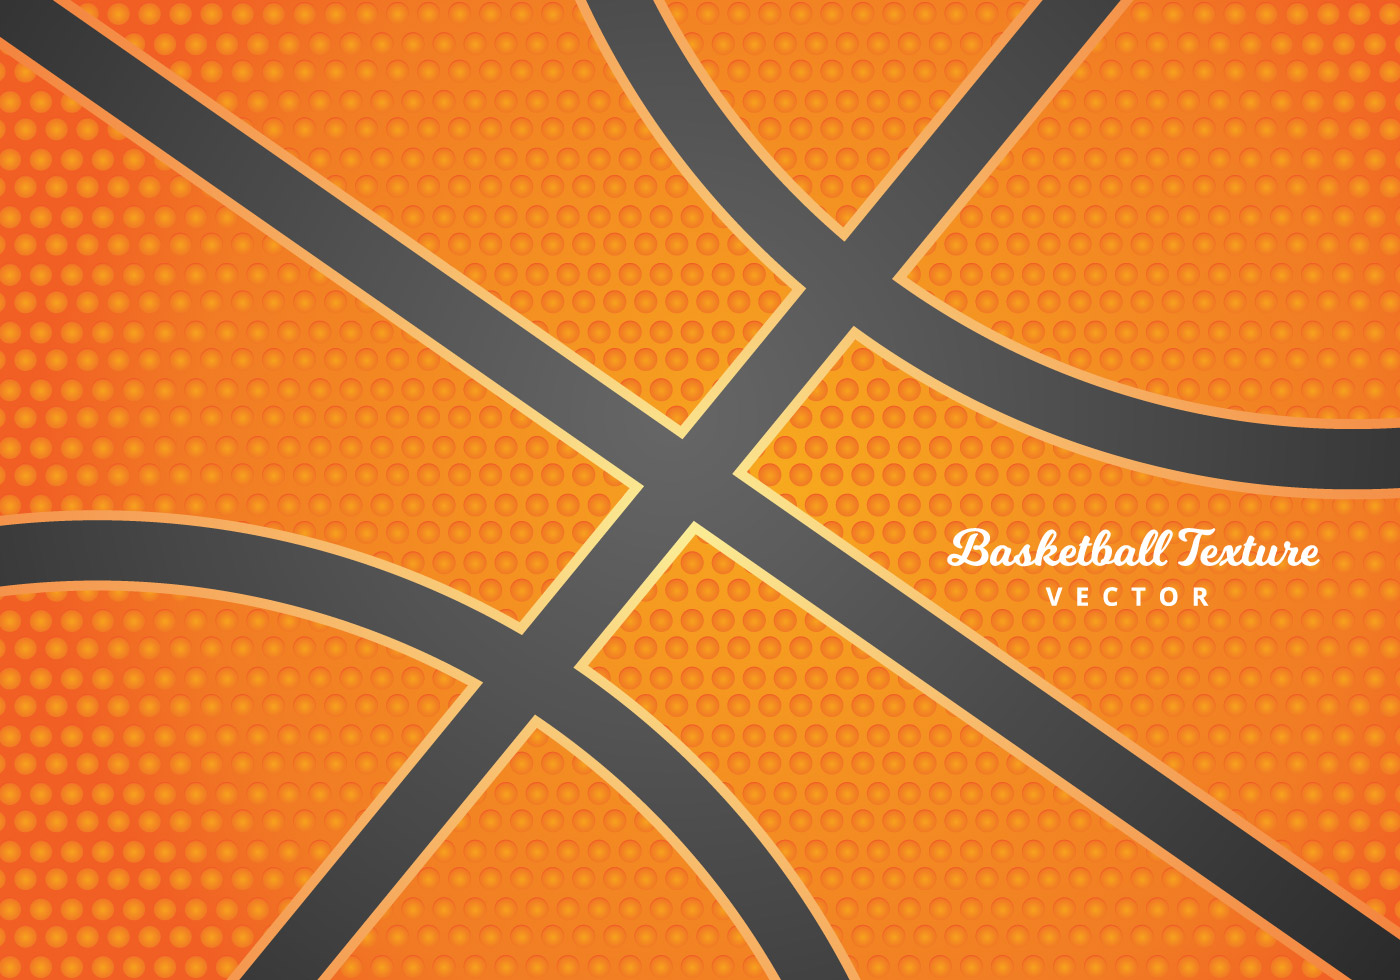 Free basketball texture background download free vector art stock graphics images for Free basketball vector